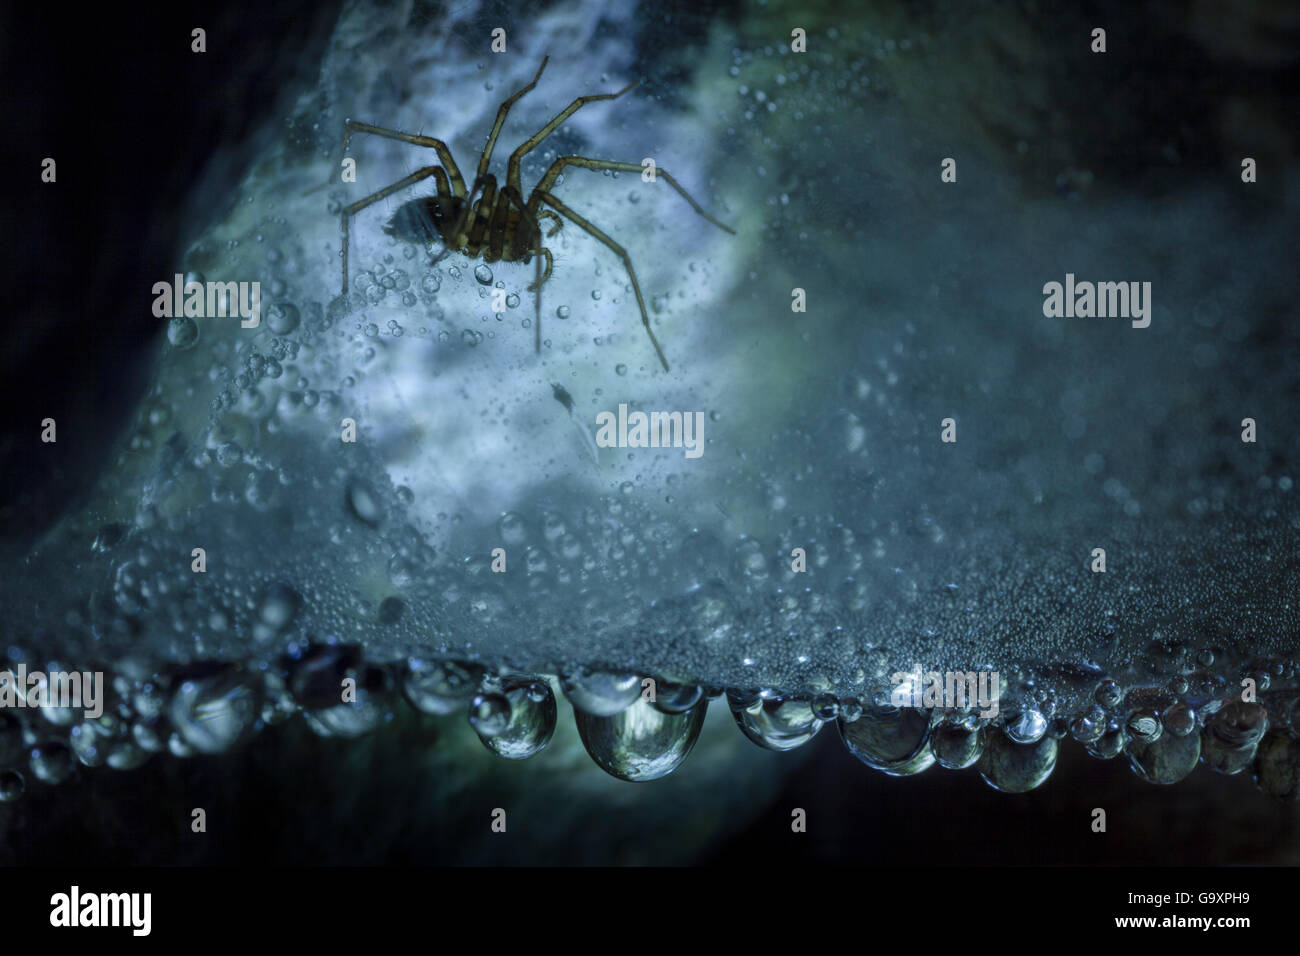 Spider (Tegenaria sp.) in dew-covered web in limestone cave, Plitvice Lakes National Park, Croatia. January. - Stock Image